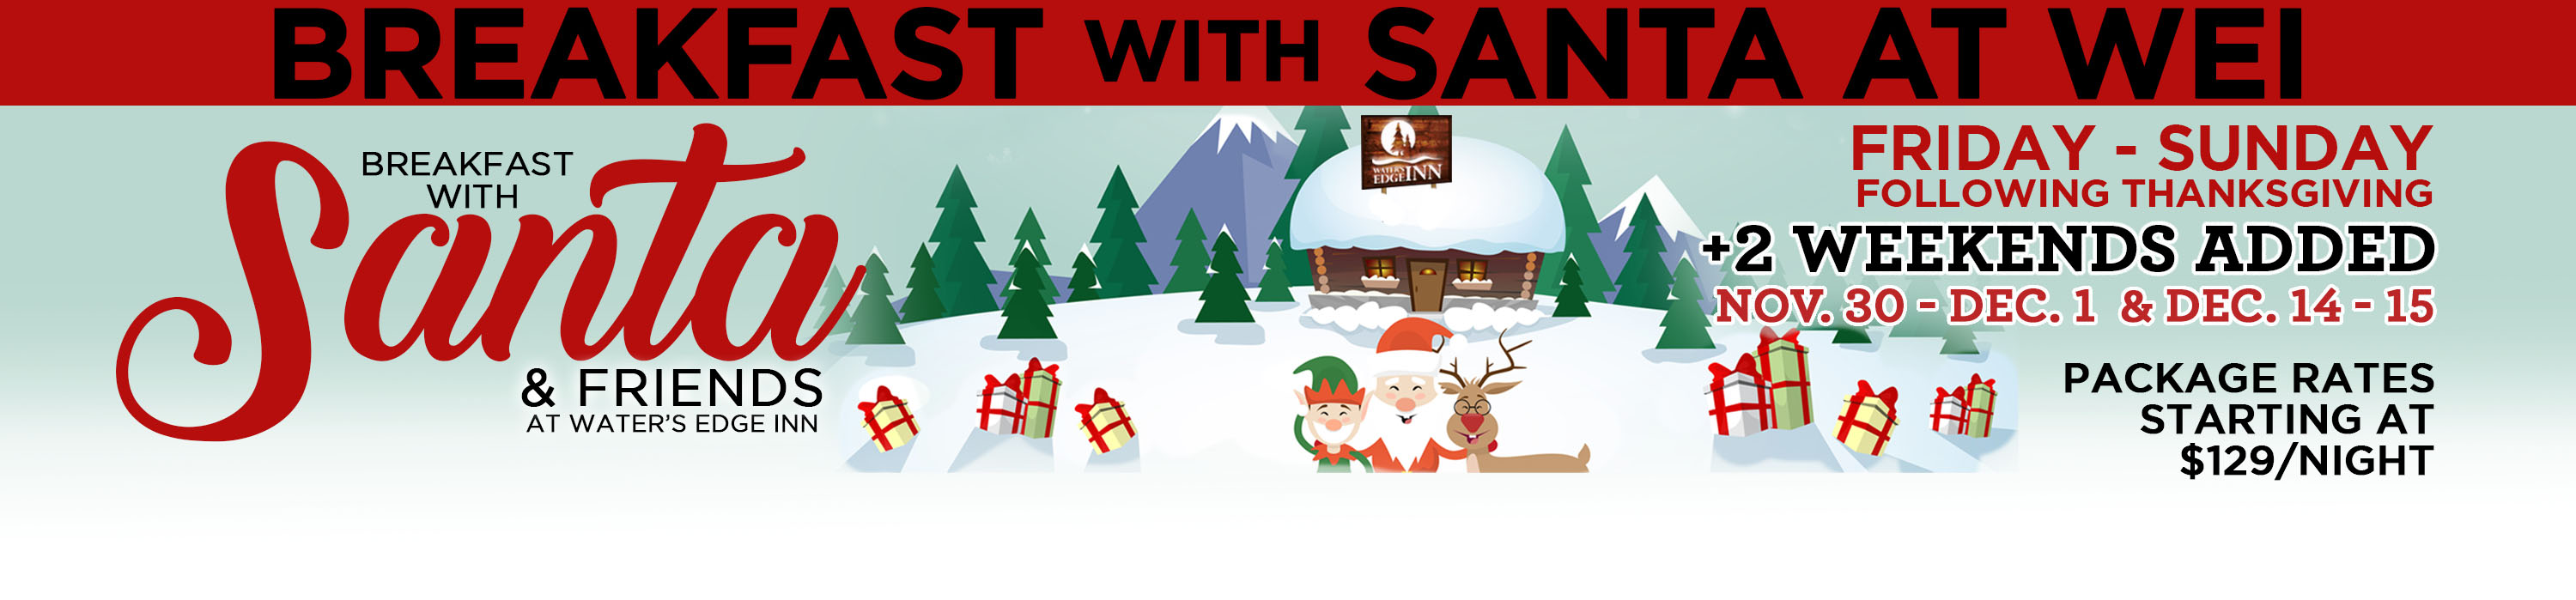 EOF_Bfast-with-Santa_Hheader_18-NEW